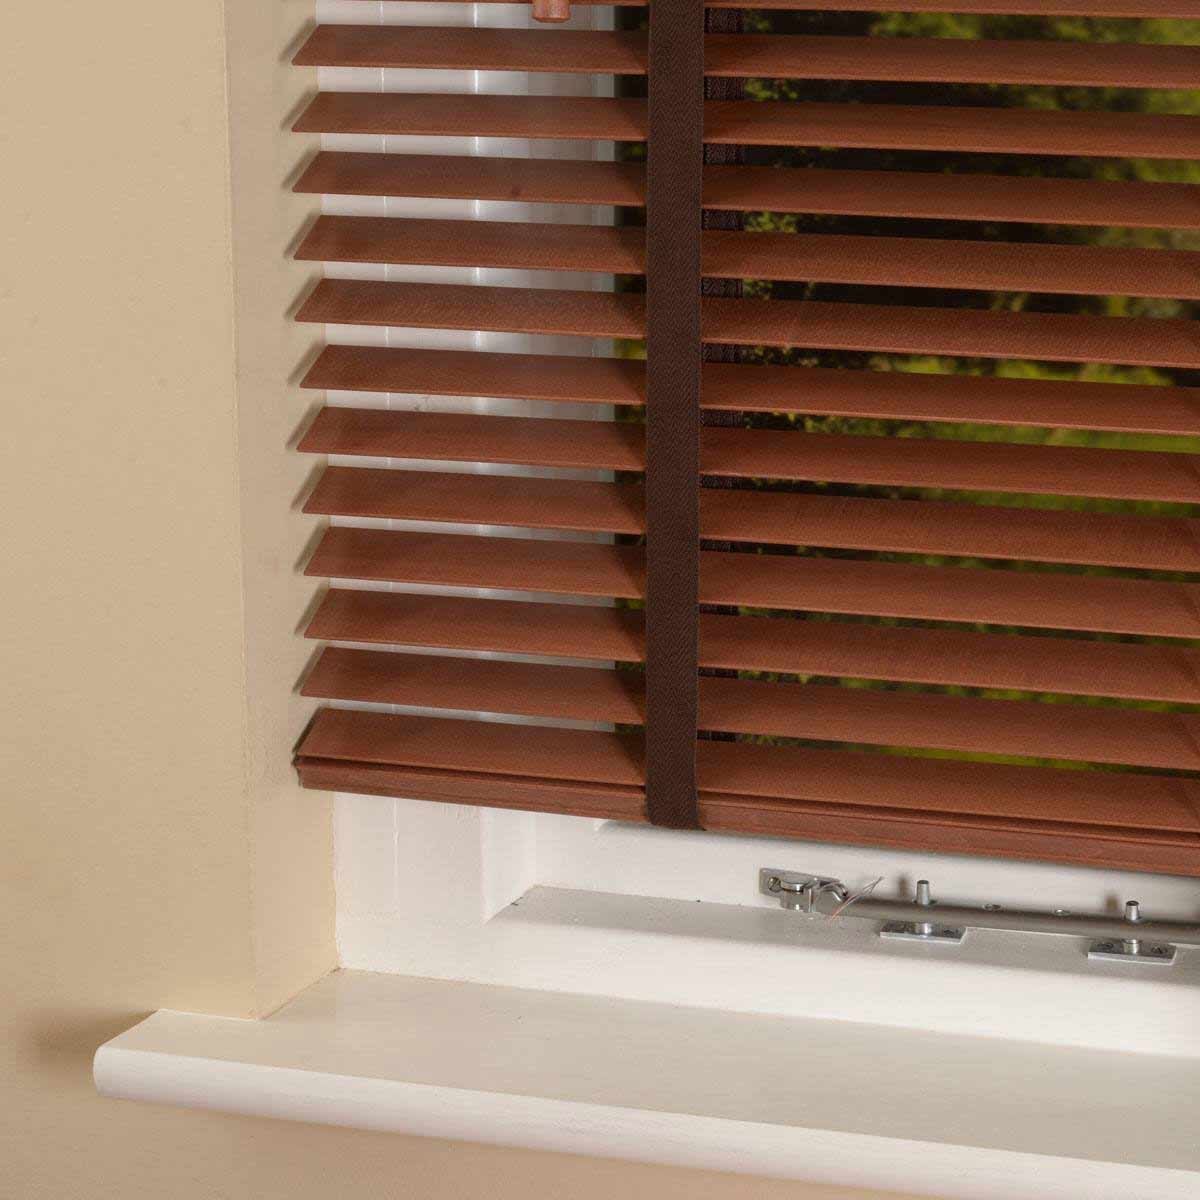 Bargain Chestnut 35mm Elementi Wood Venetian Blind With Tapes Stockists